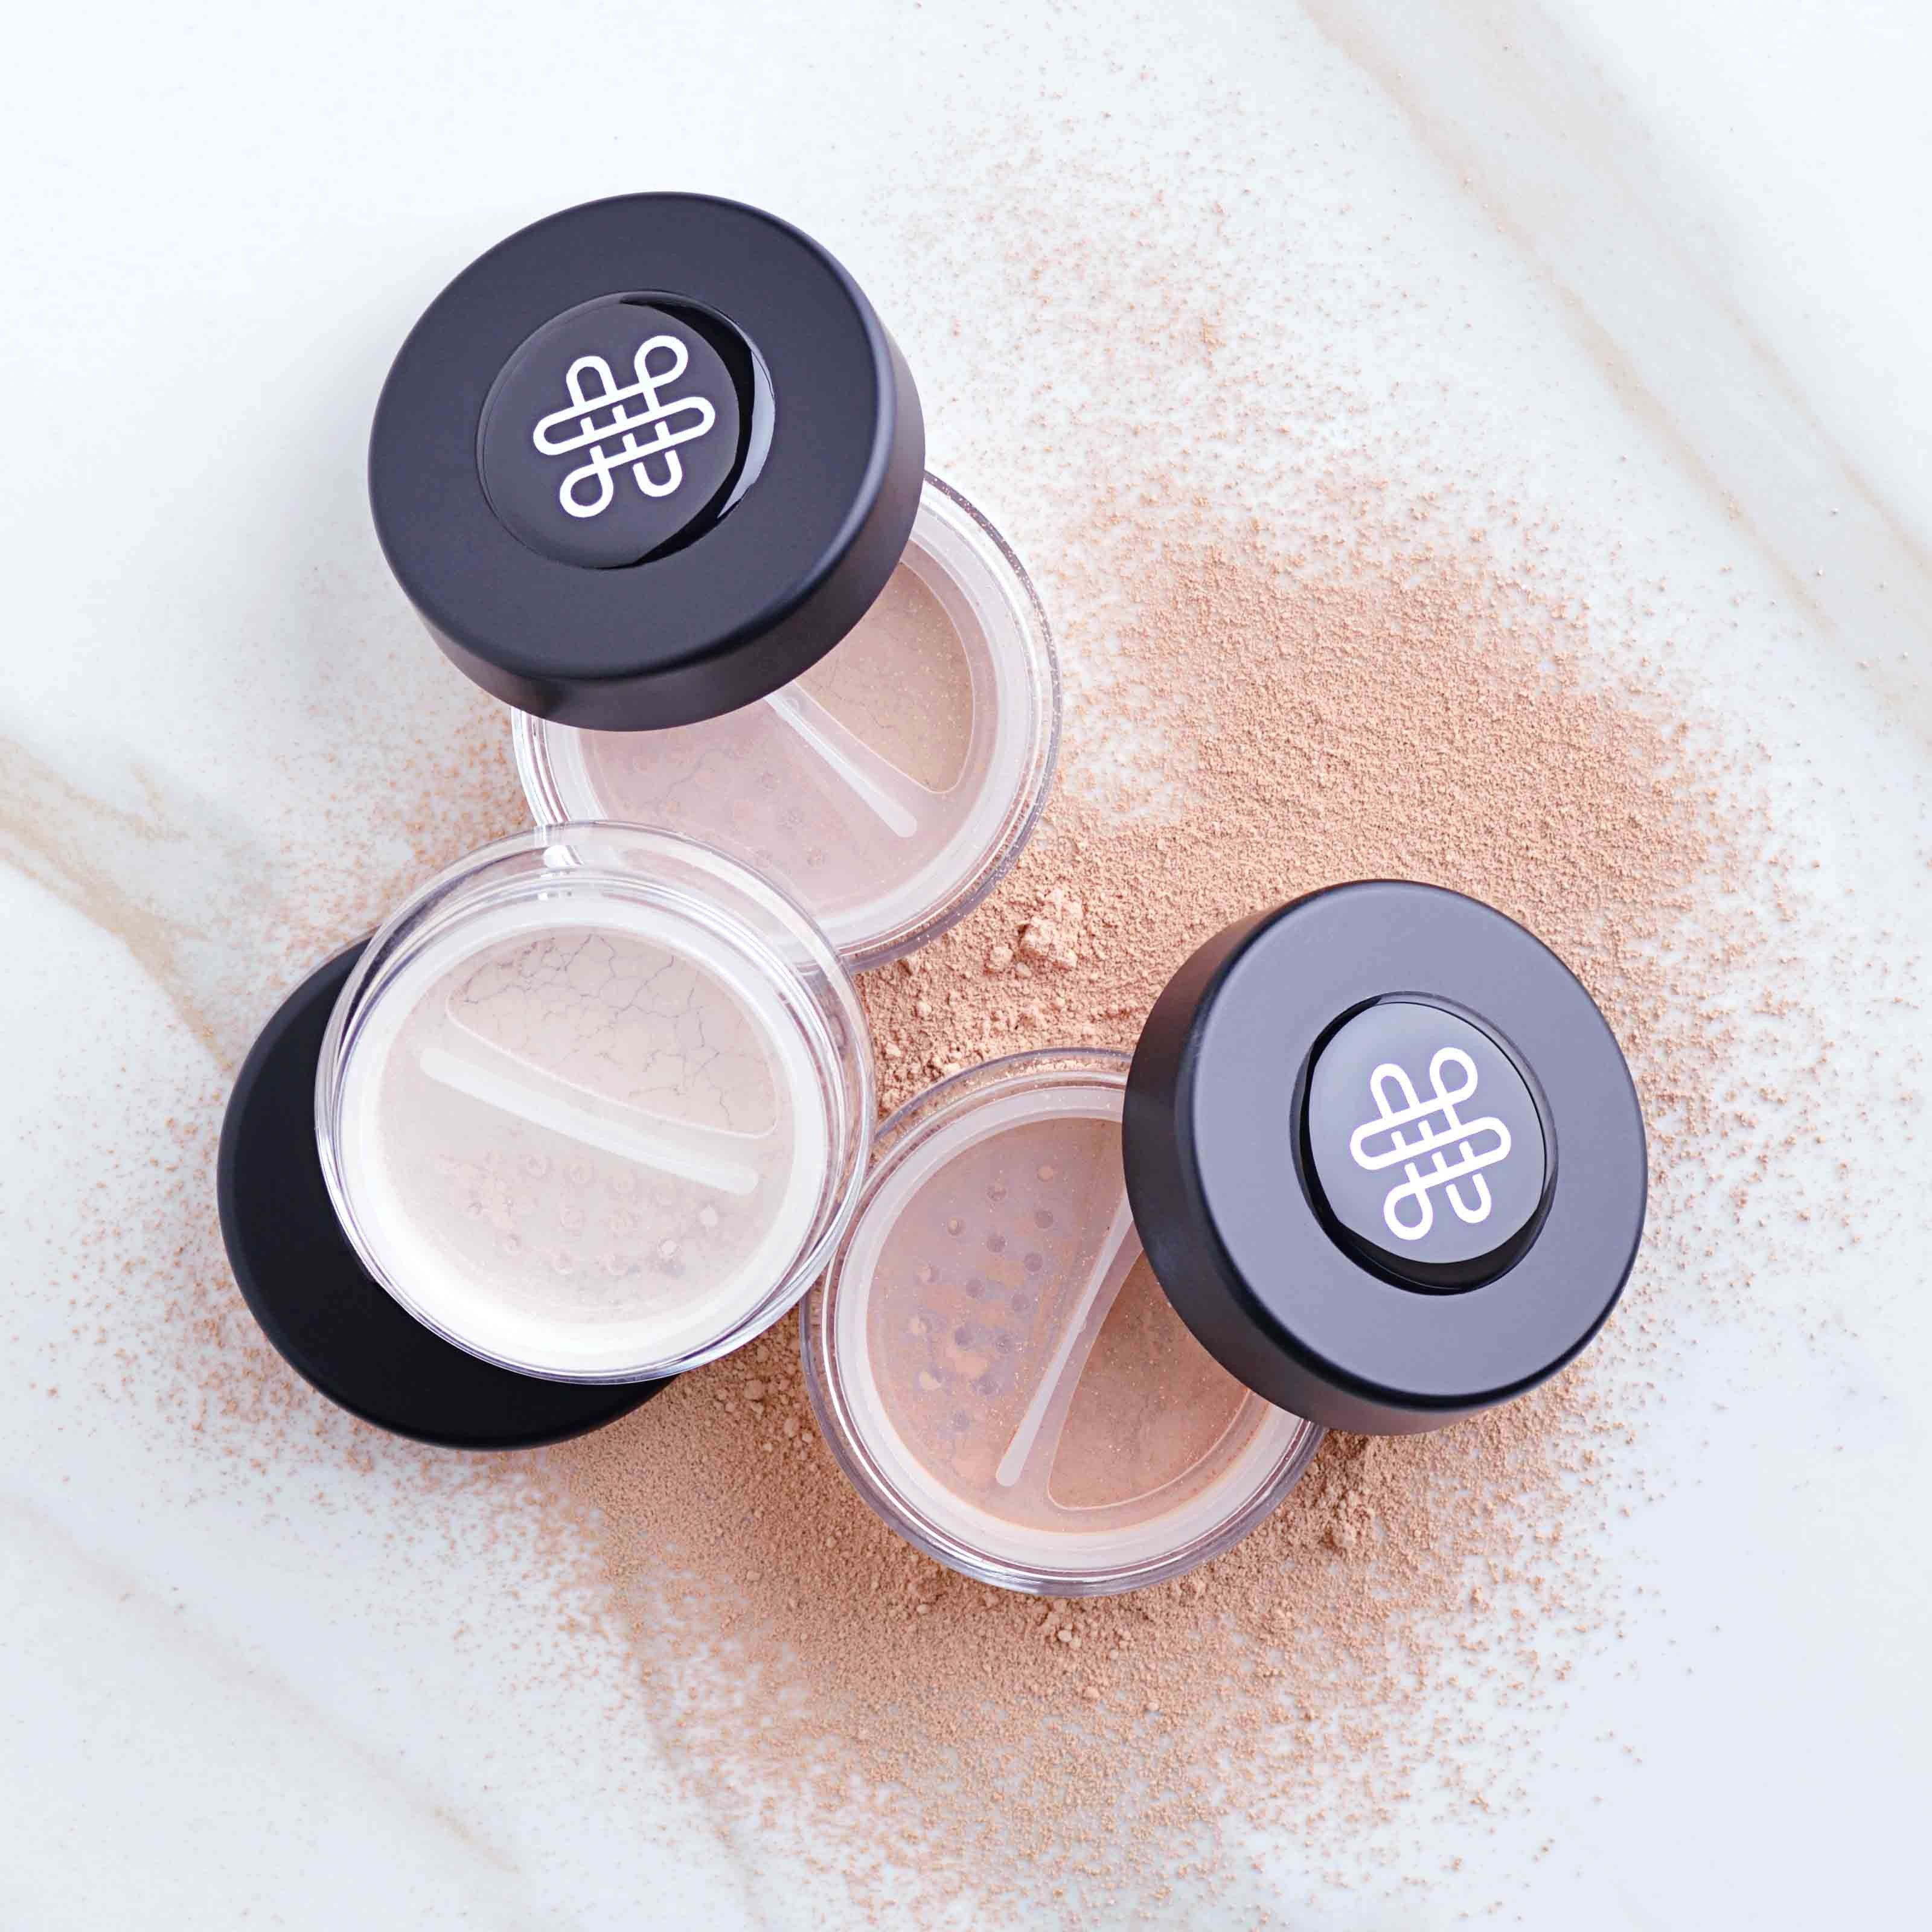 Titanium dioxidefree makeup or micafree makeup is our